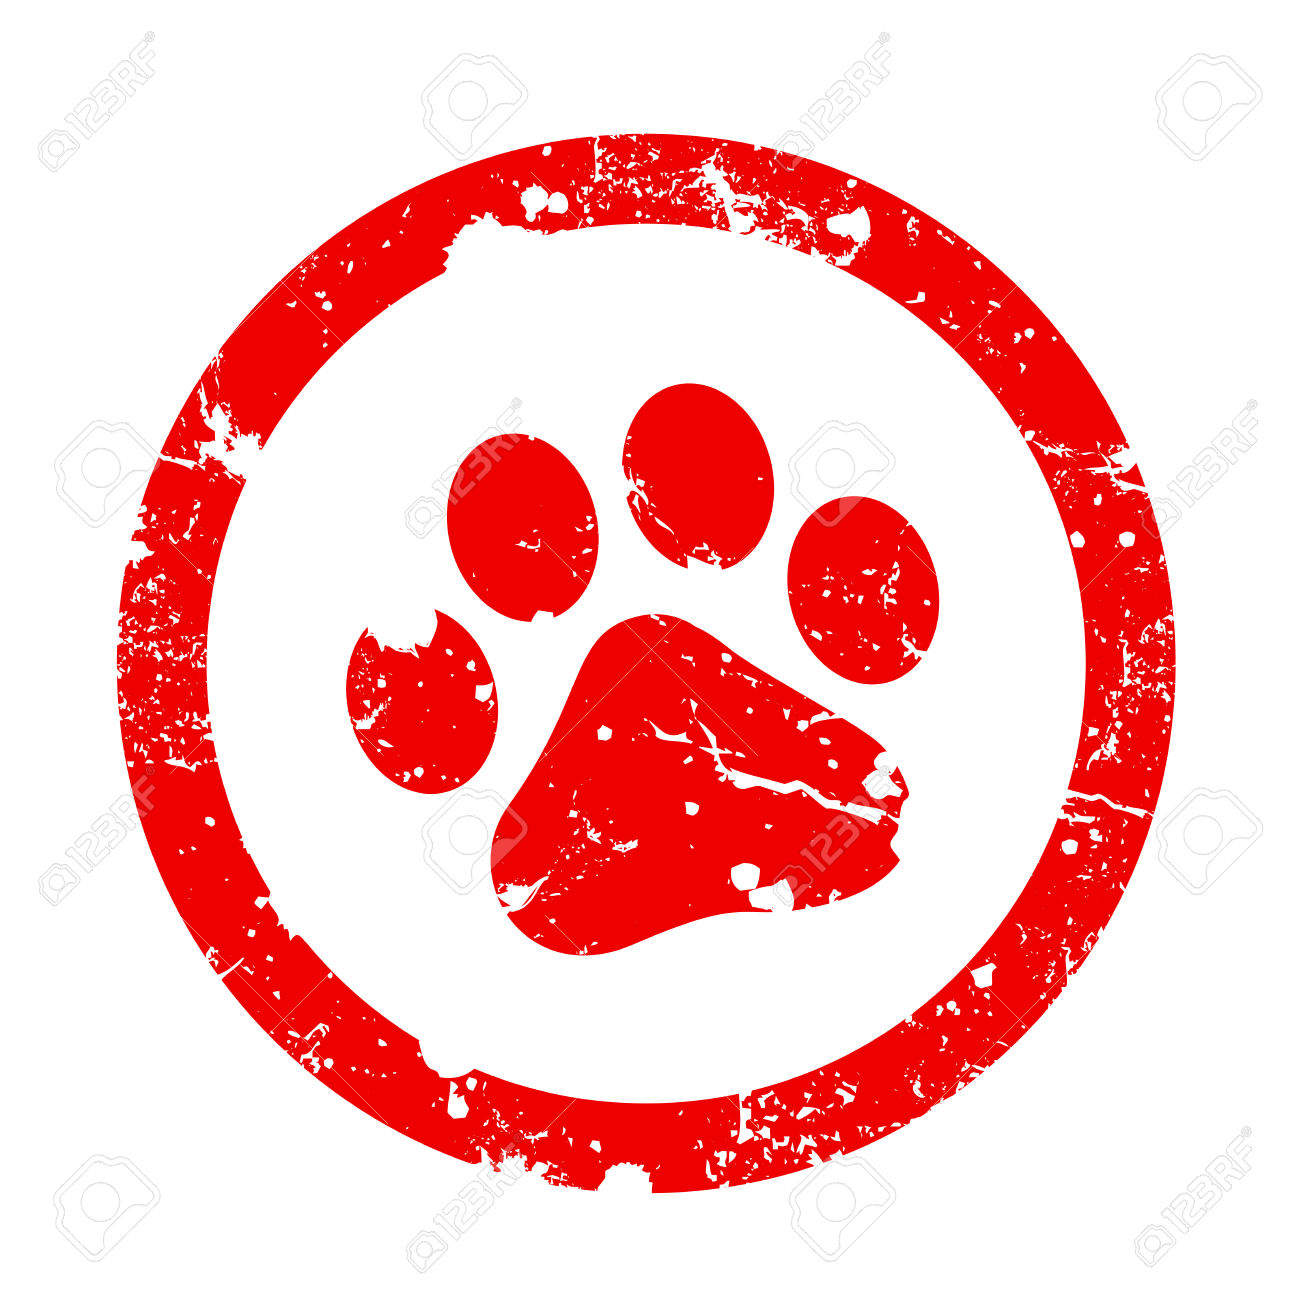 Paw Print Images & Stock Pictures. Royalty Free Paw Print Photos.